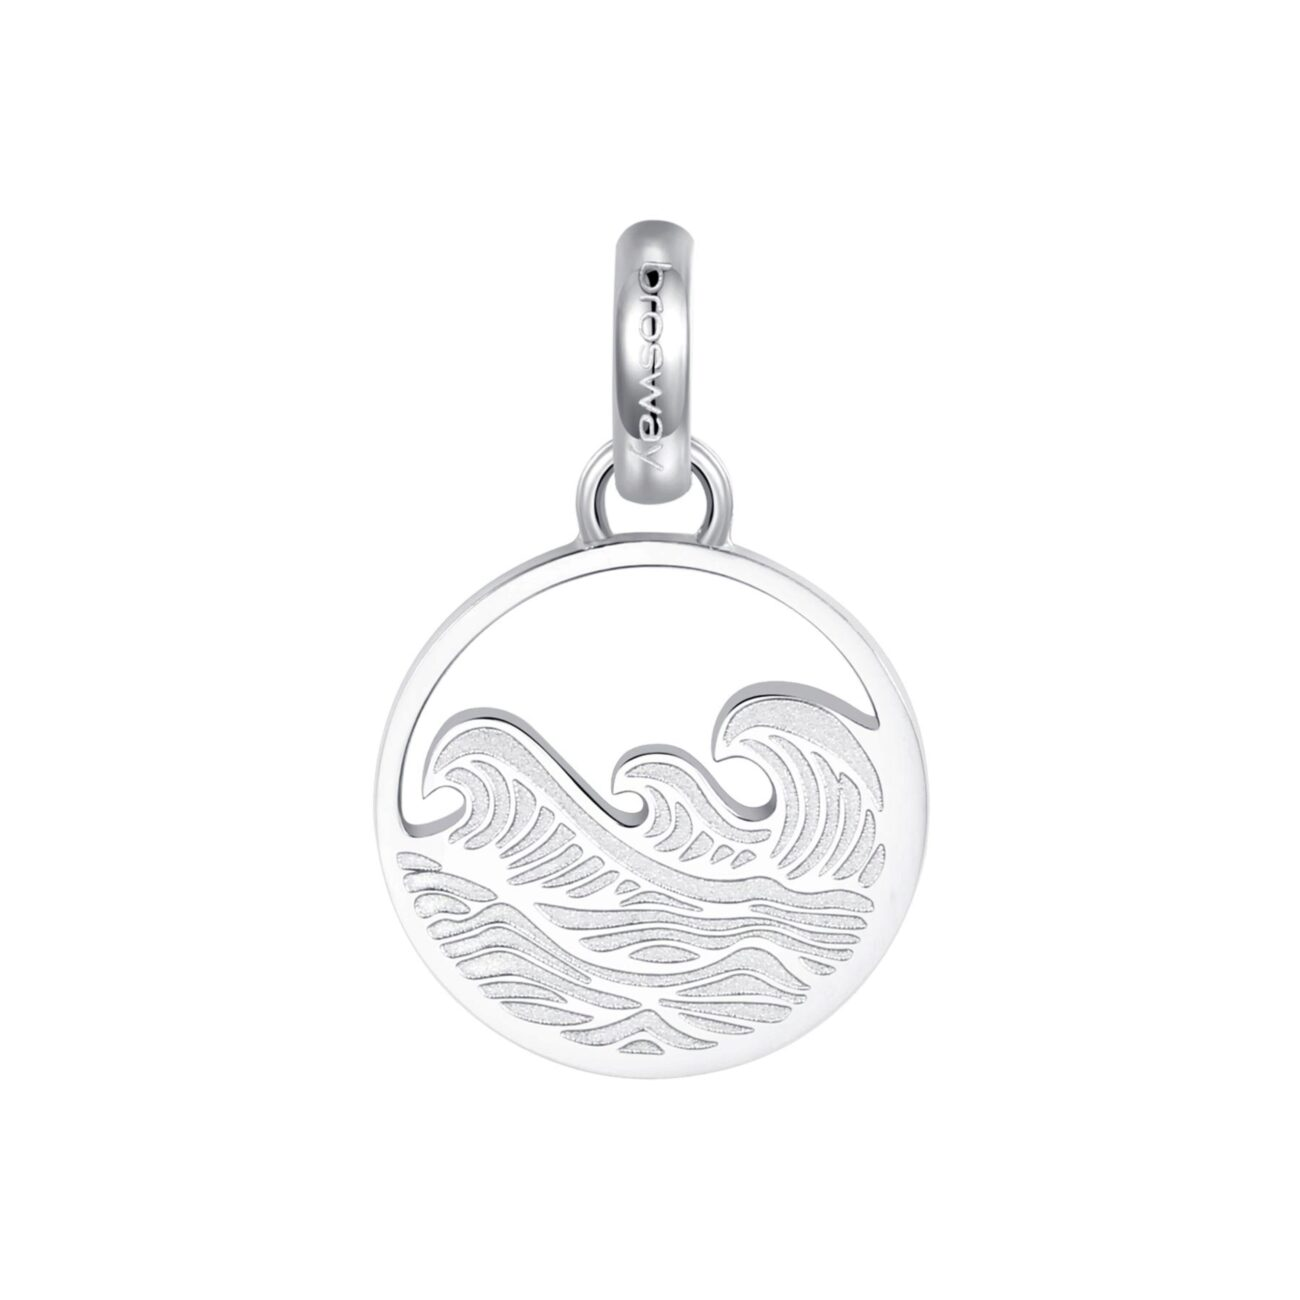 ENGRAVING: Sea Lover (back)316L stainless steel beads with sea and engraving.